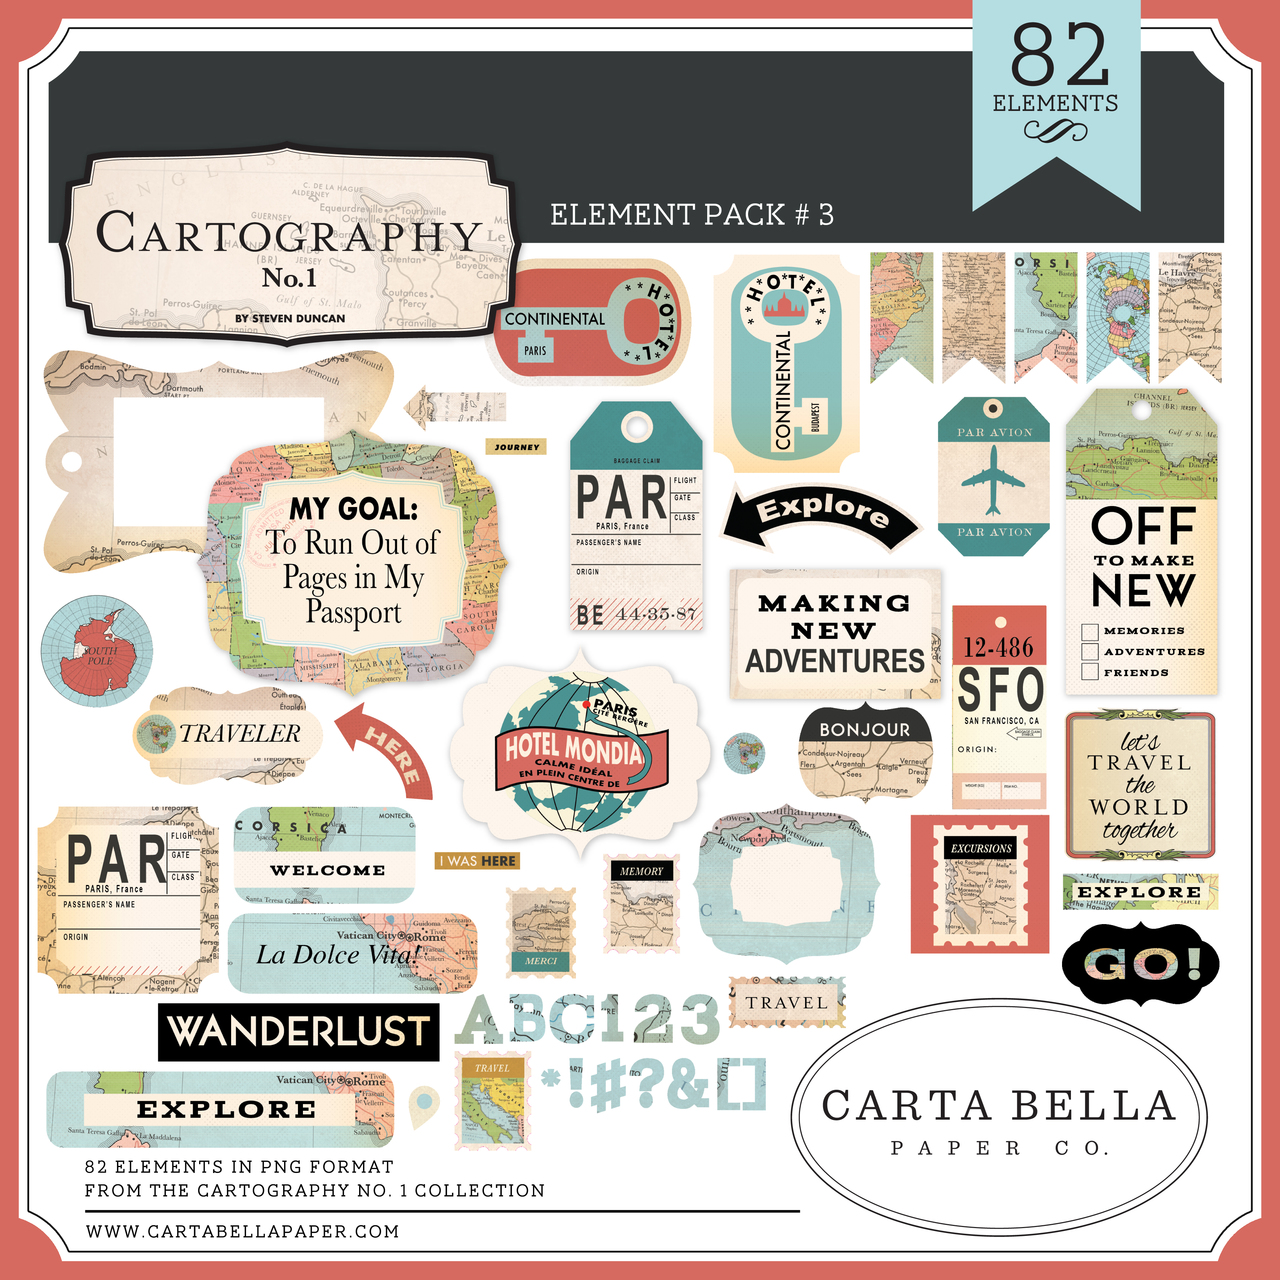 Cartography No. 1 Element Pack #3